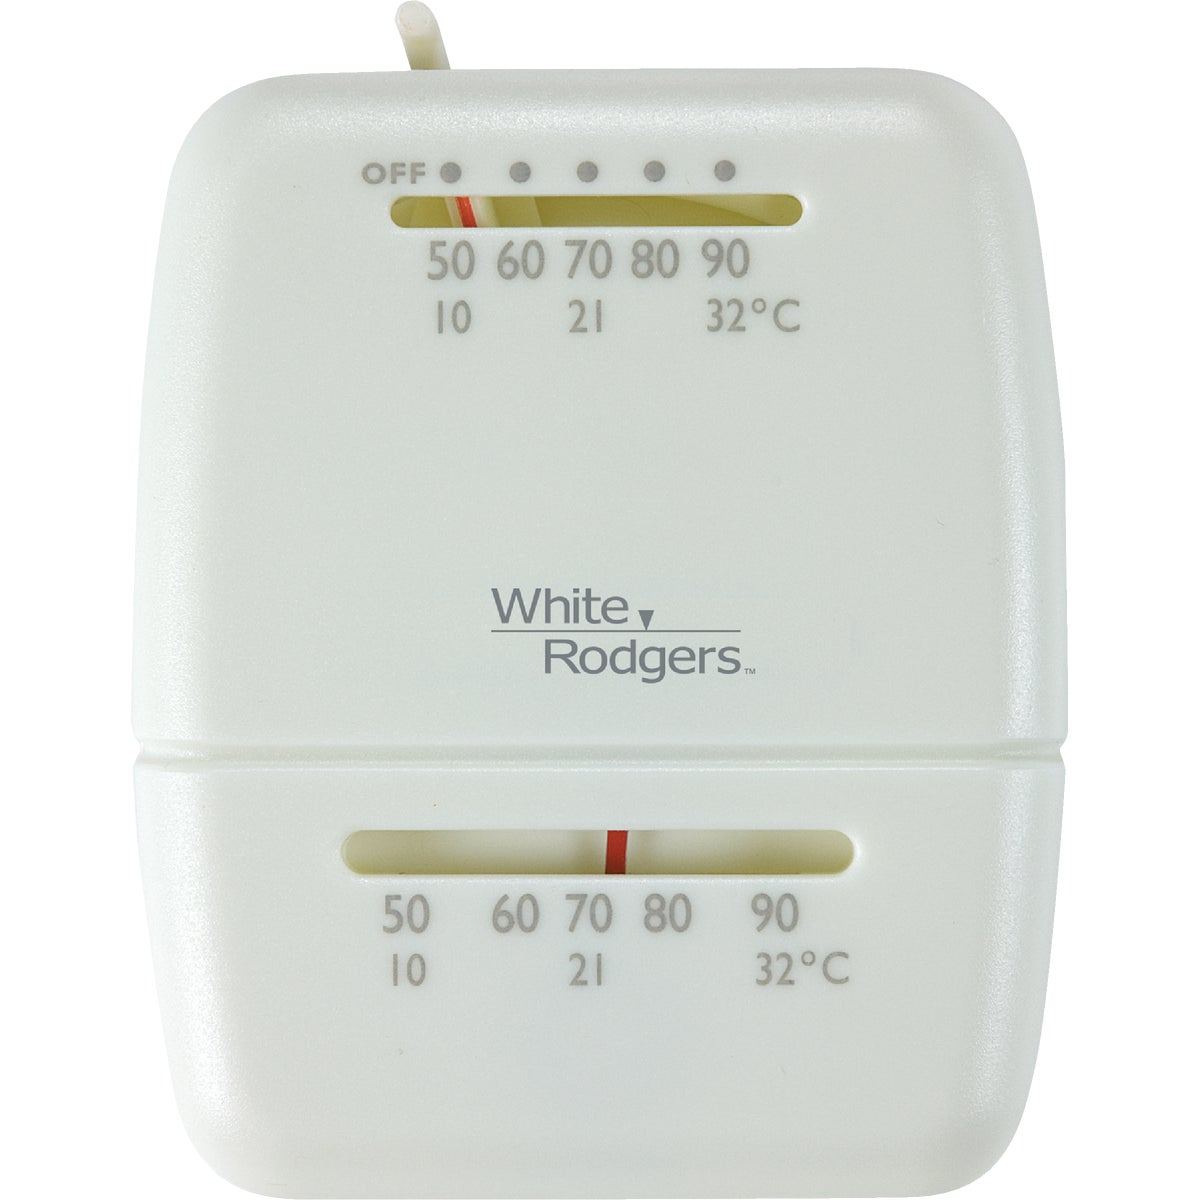 White-Rodgers/Emerson 24V HEAT ONLY THERMOSTAT 200